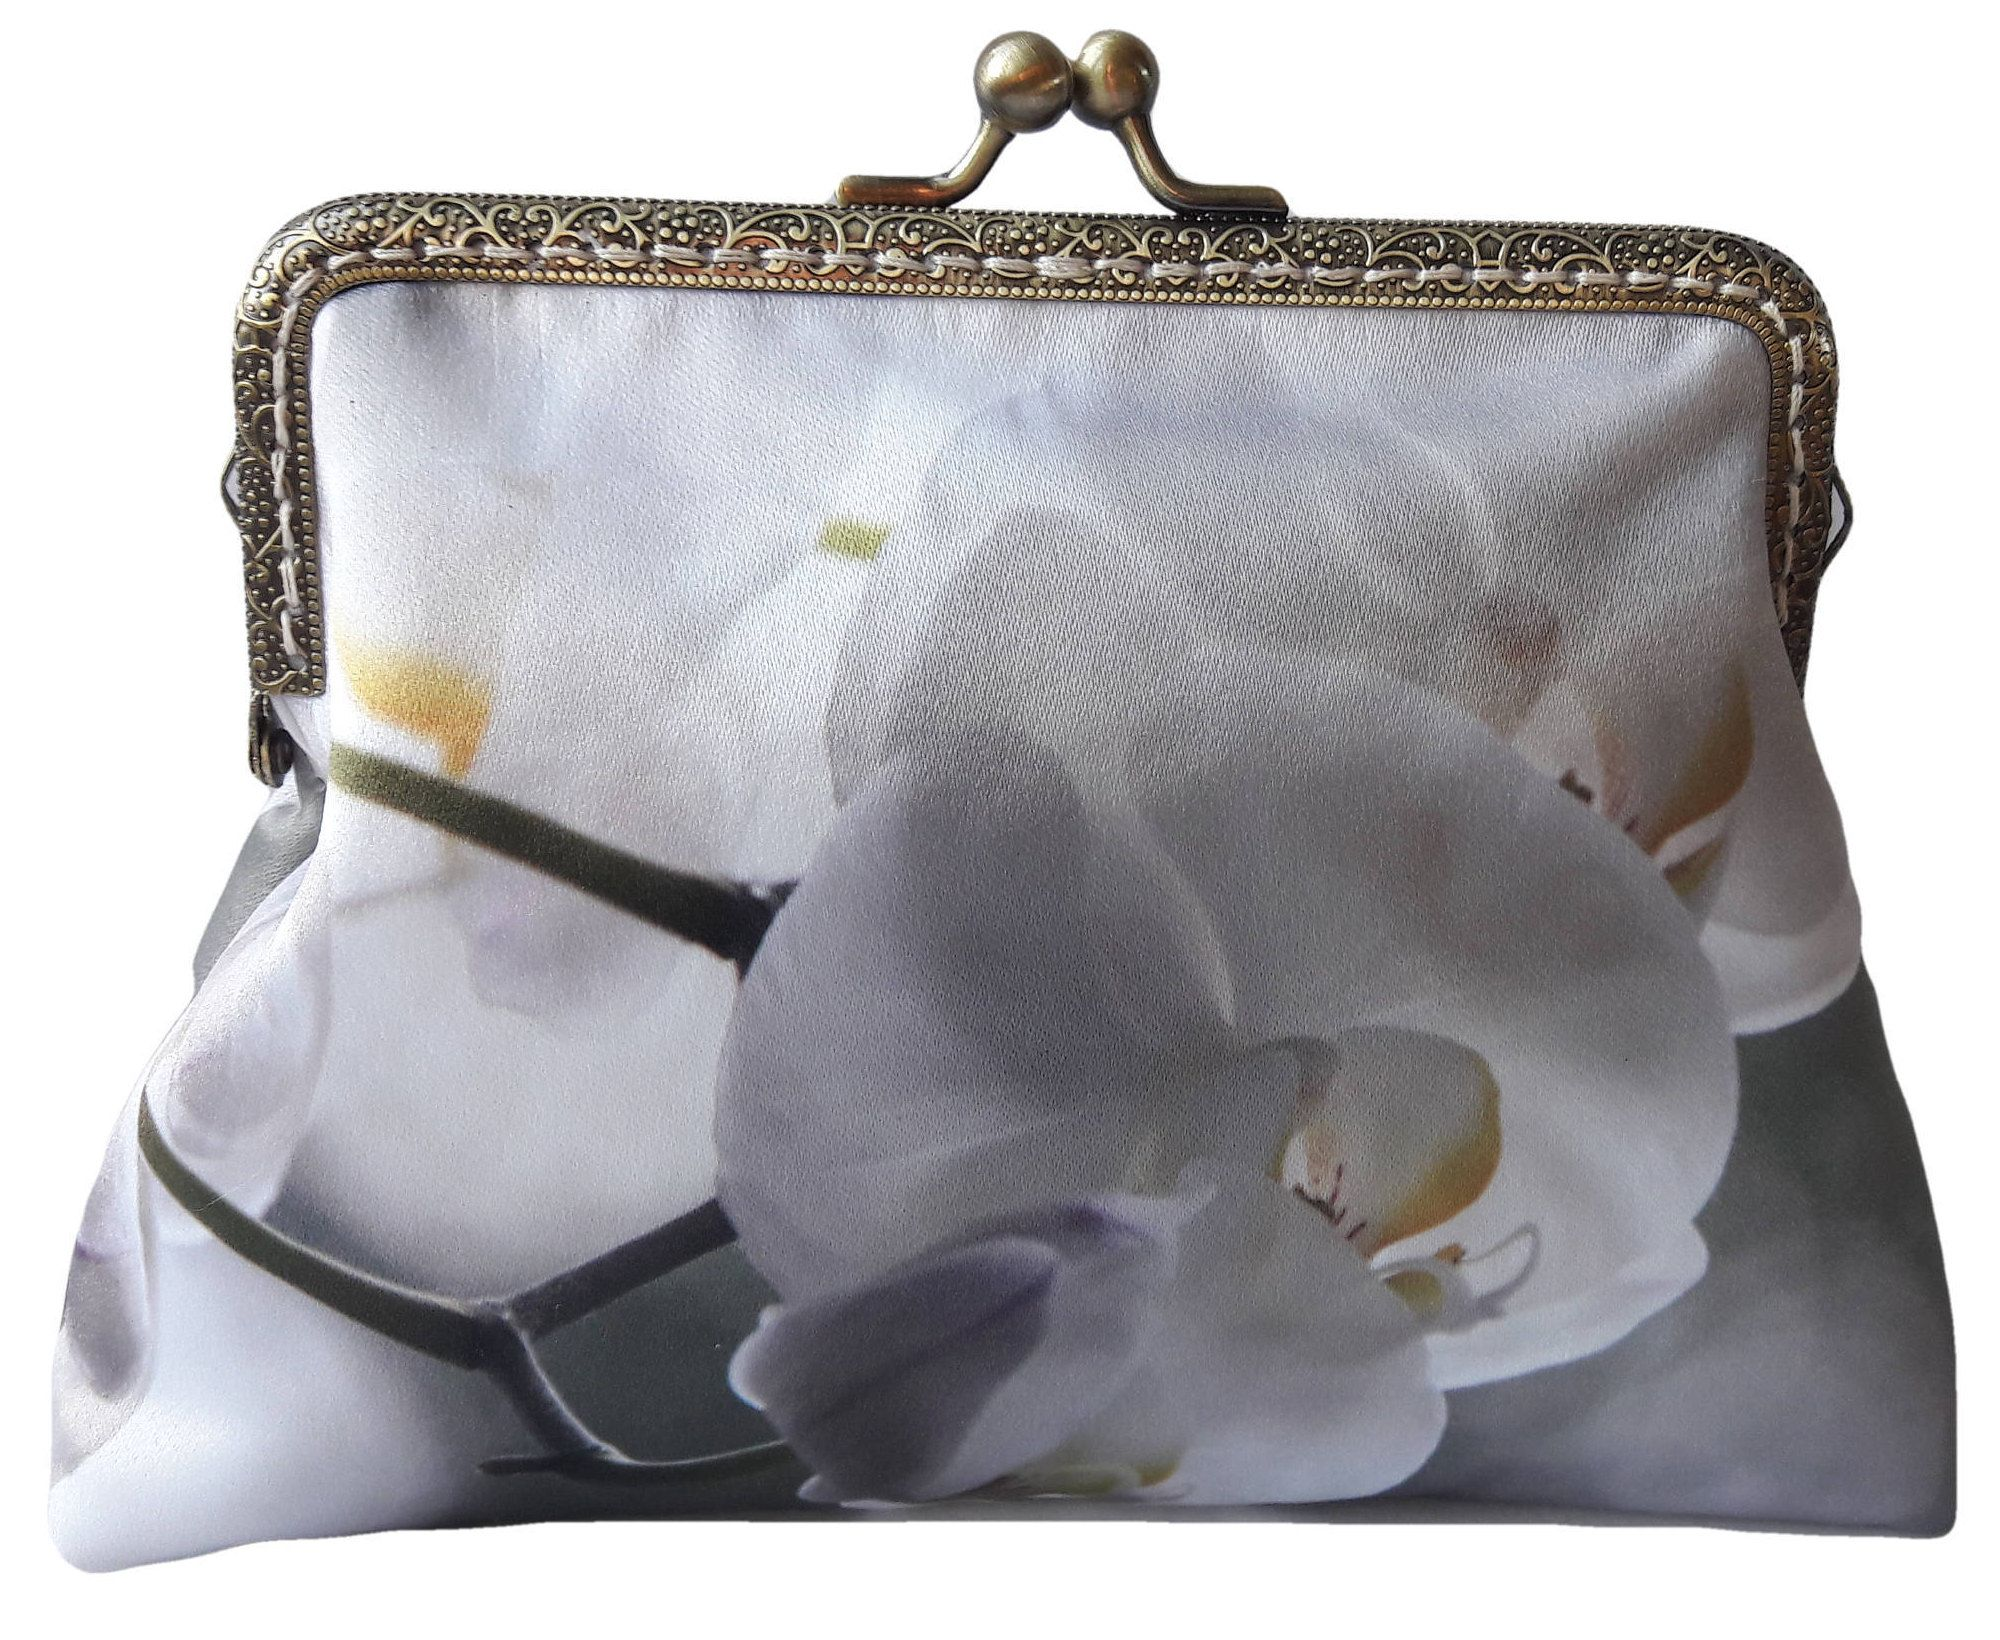 White orchid satin antique bronze sewin clasp frame clasp clutch